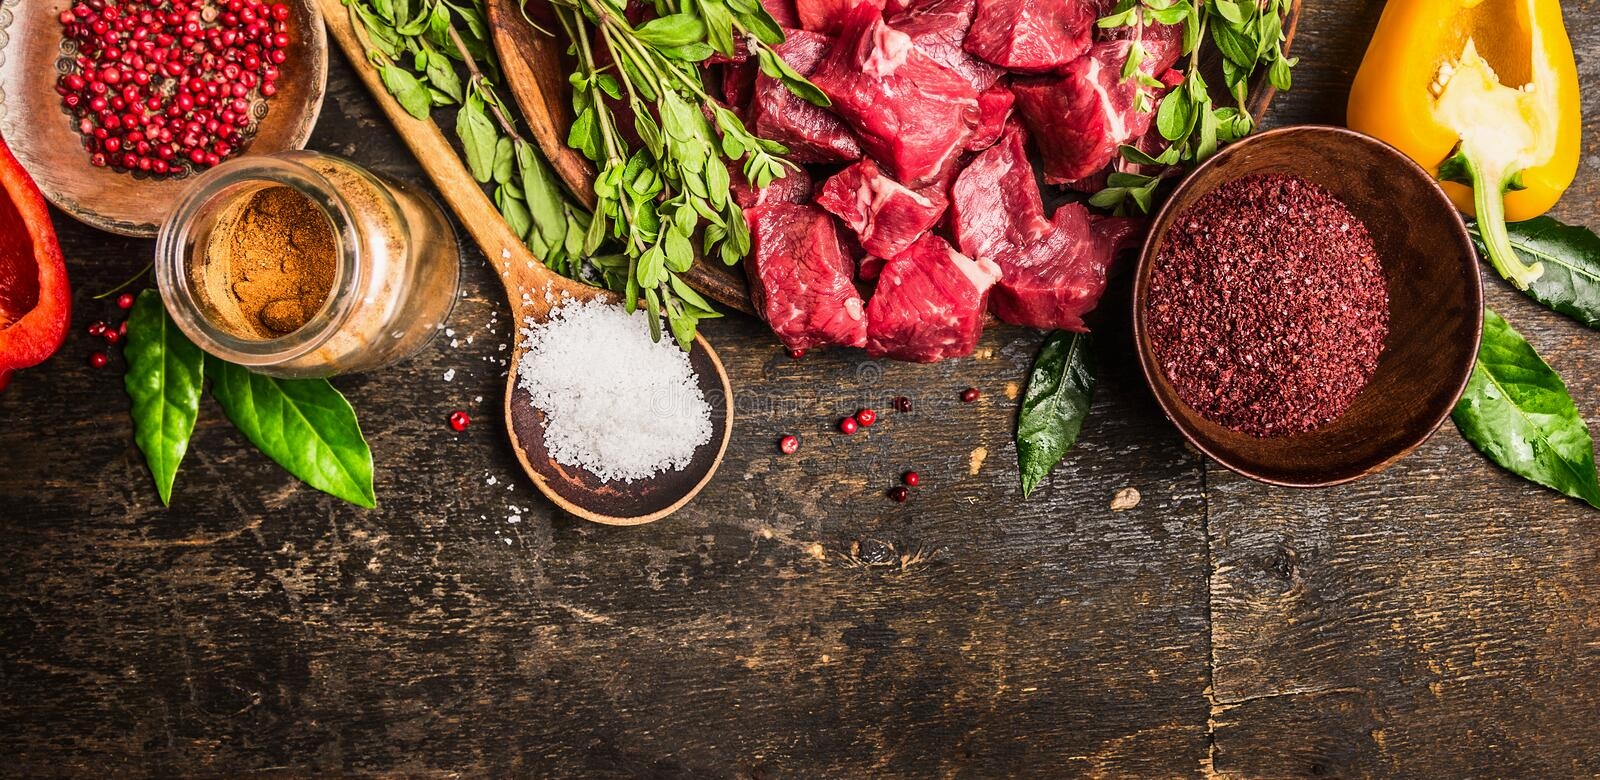 Ingredients for goulash or stew cooking: raw meat, herbs, spices, vegetables and spoon of salt on rustic wooden background, top vi royalty free stock photography